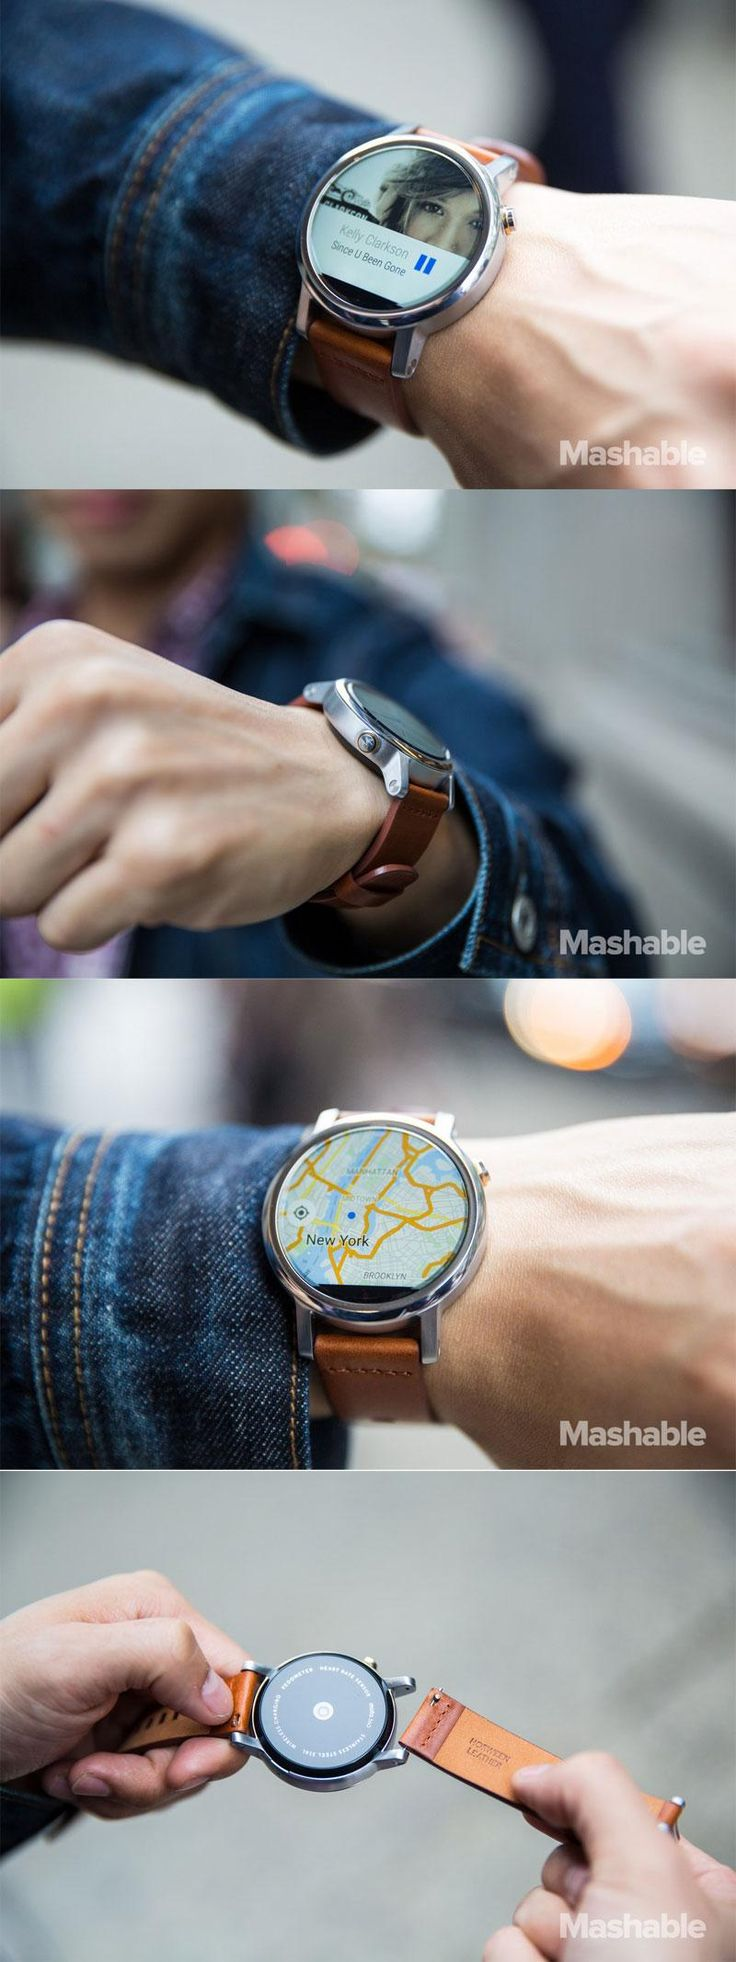 The new Moto 360 isn't perfect, but it's one pretty smartwatch